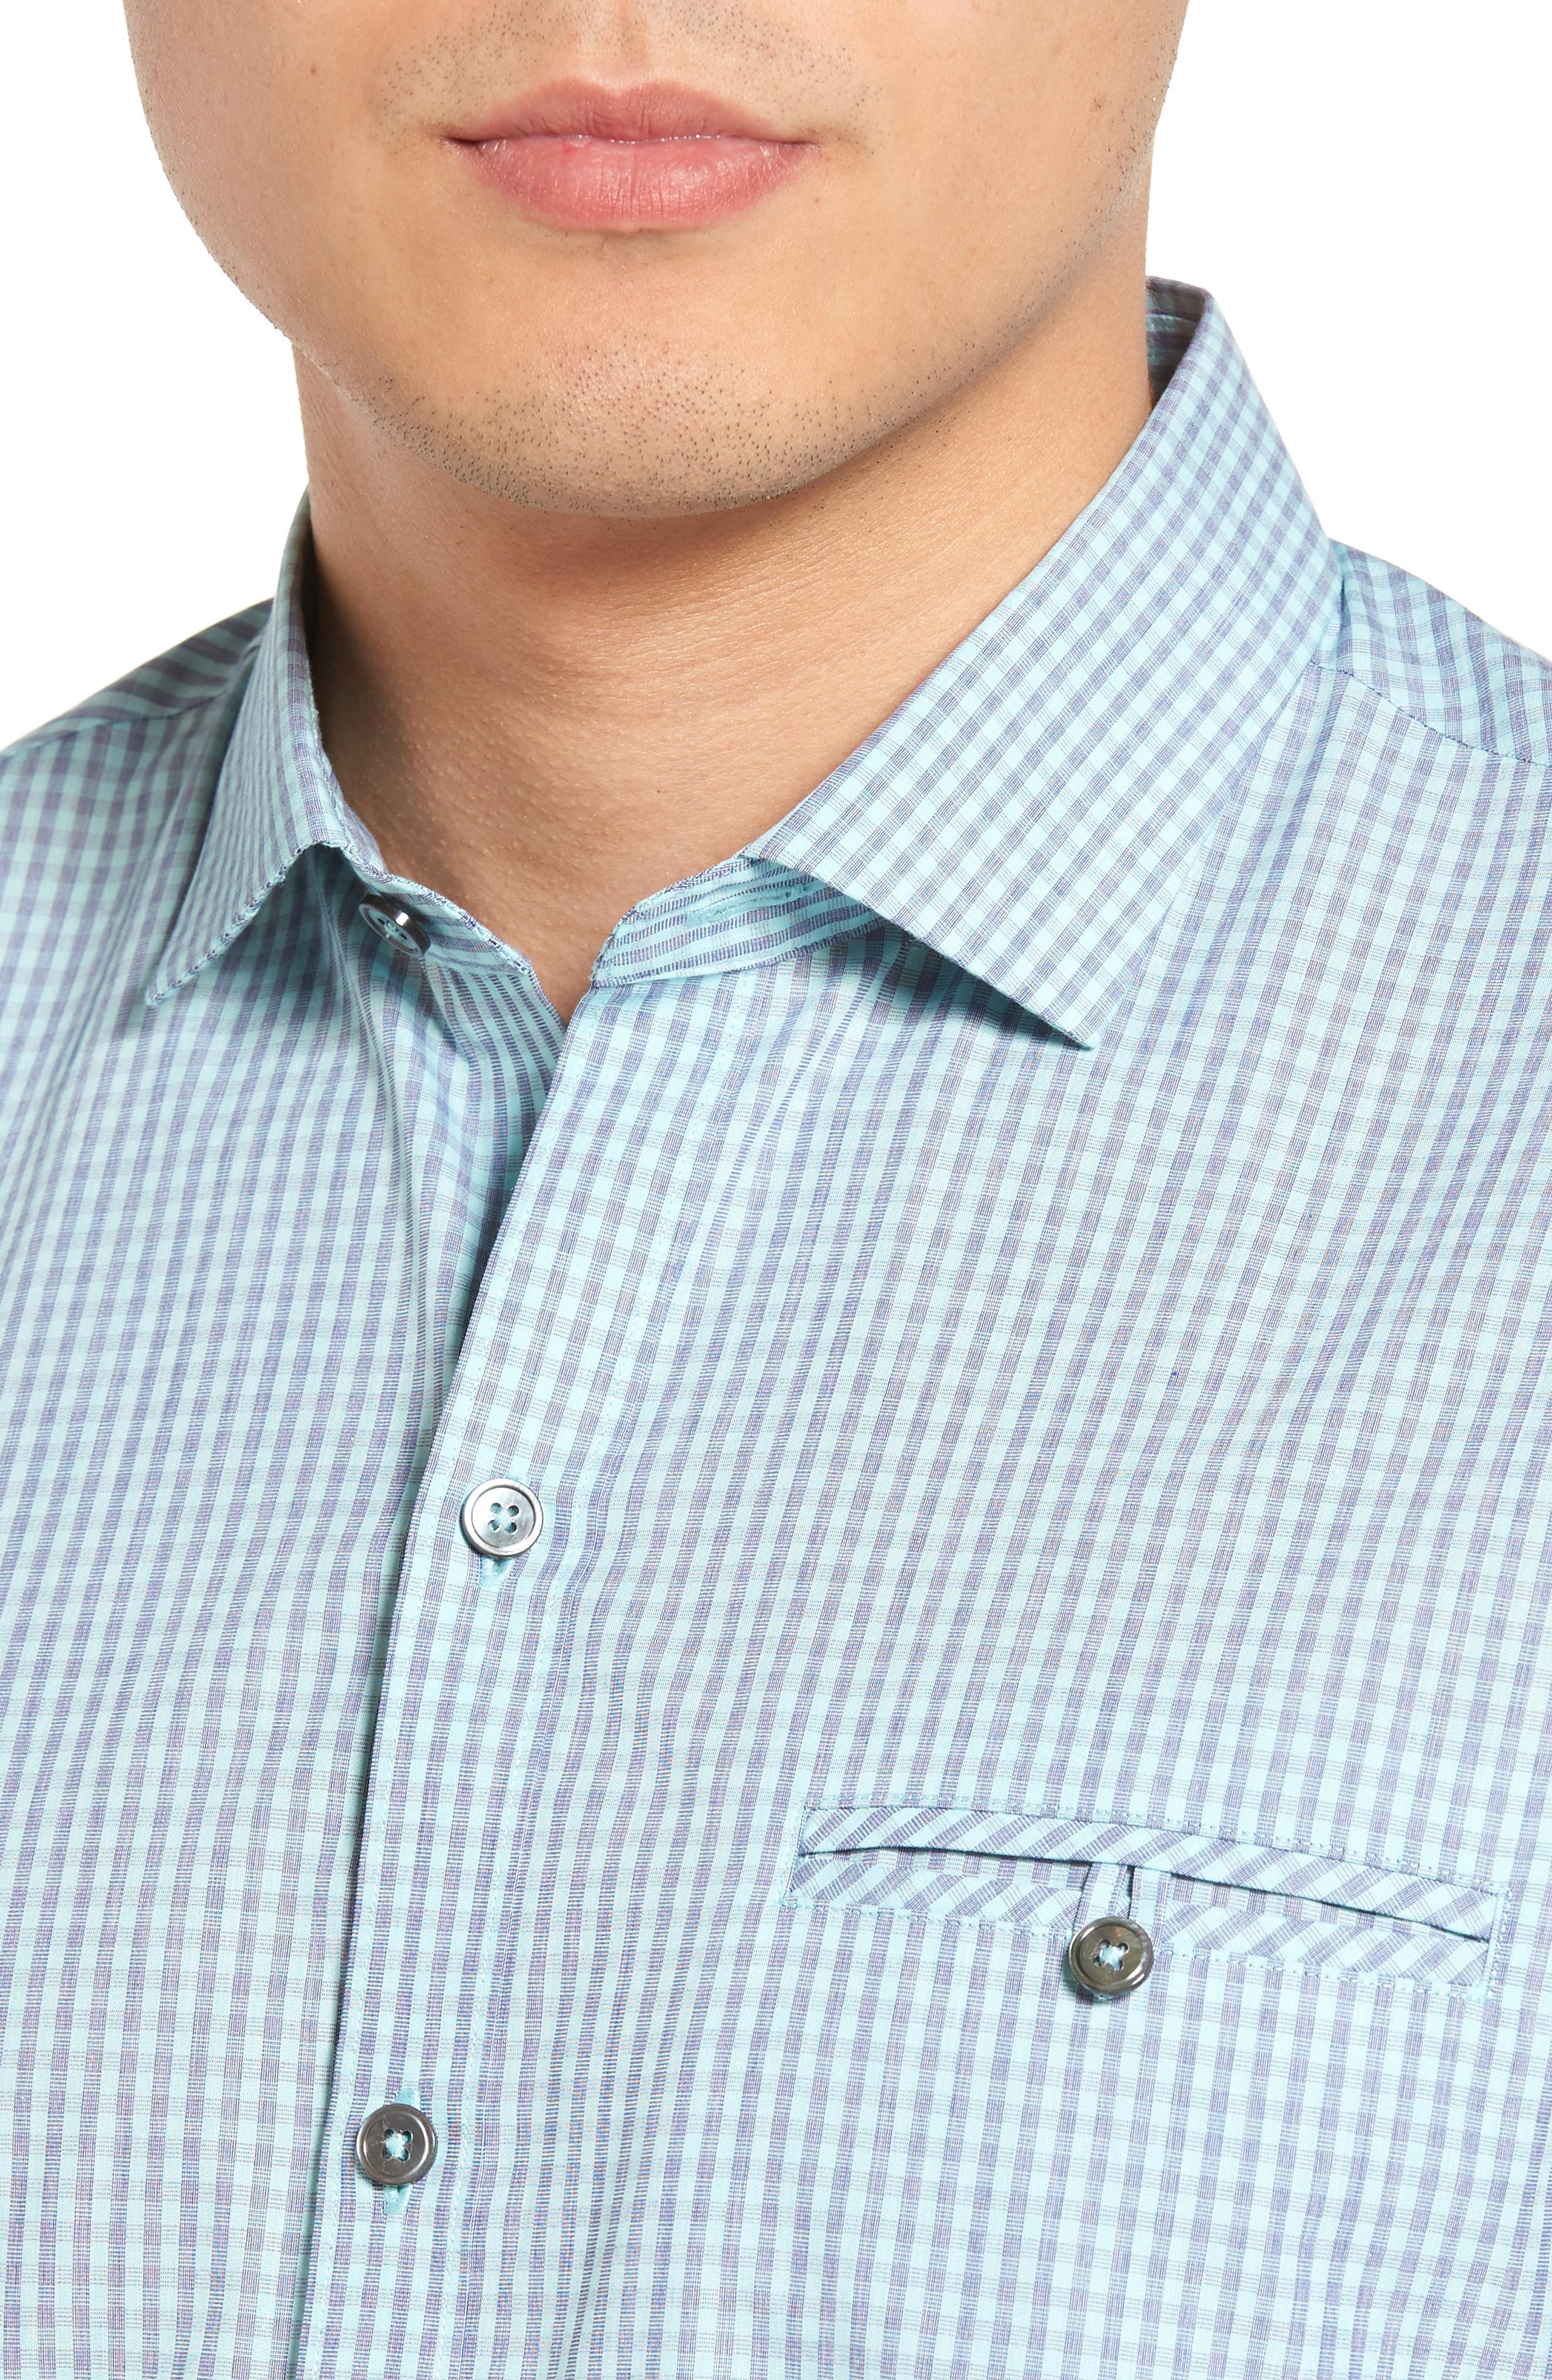 Rappaport Sport Shirt,                             Alternate thumbnail 4, color,                             332